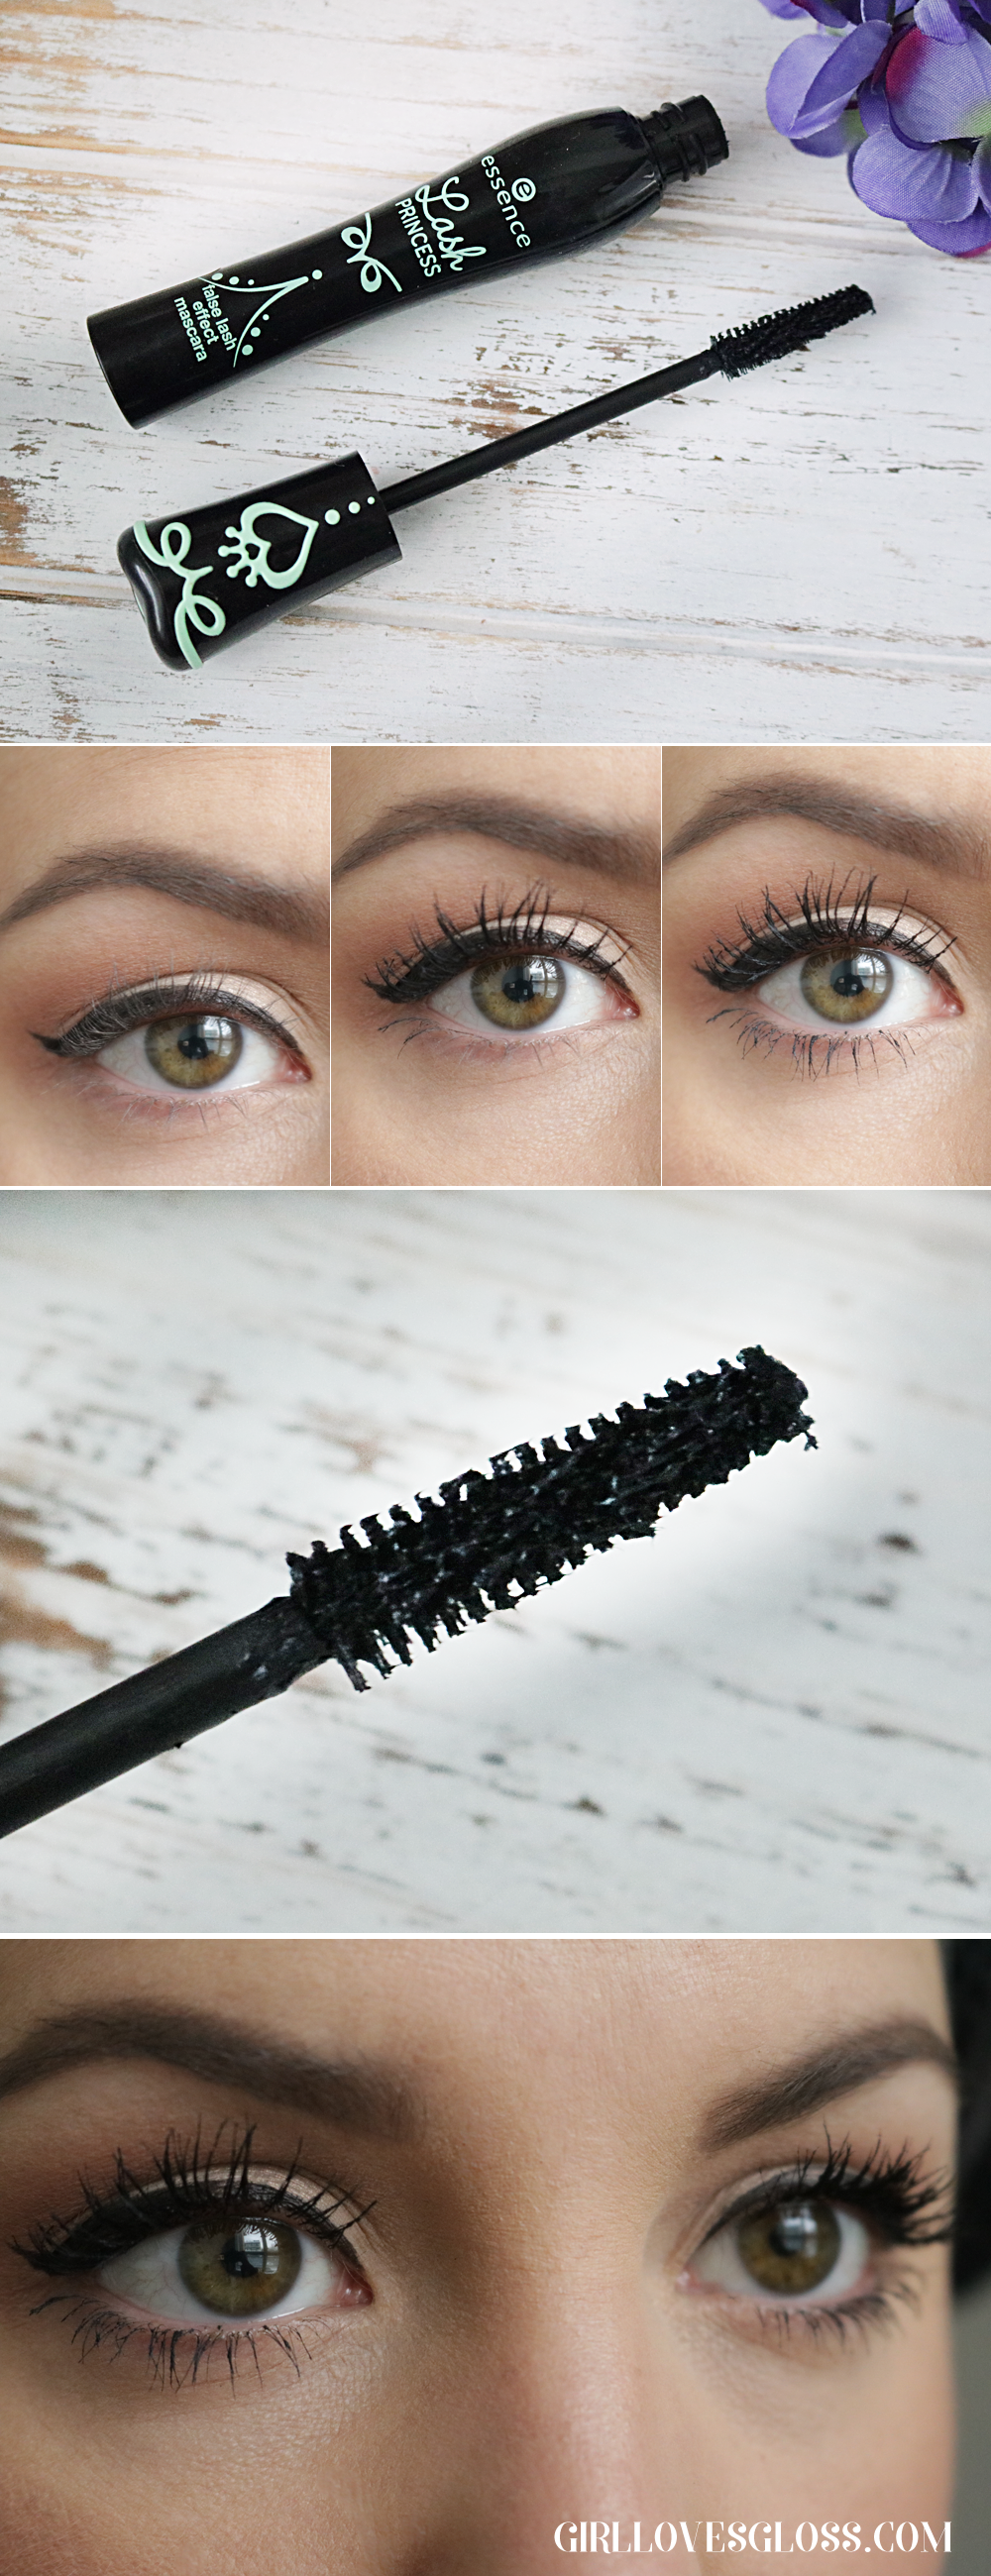 Essence Lash Princess Mascara Review with Before and After